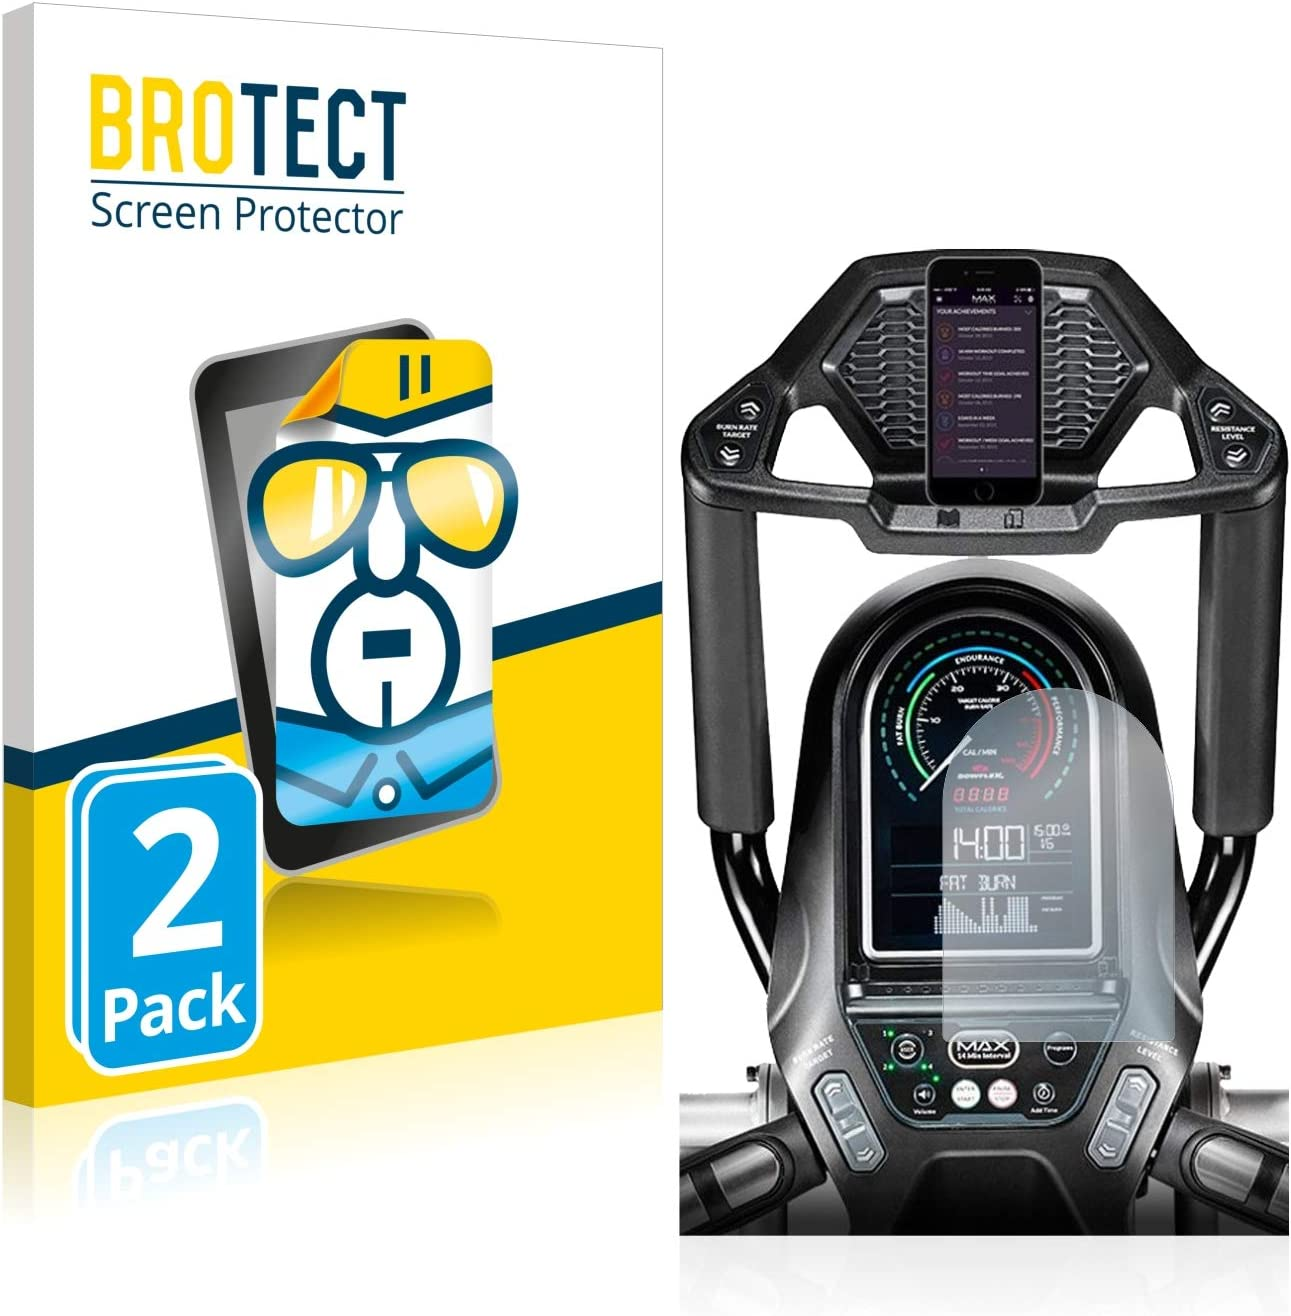 Dirt-Repellent Crystal-Clear Hard-Coated 2X BROTECT HD-Clear Screen Protector for Bowflex Max Trainer M7